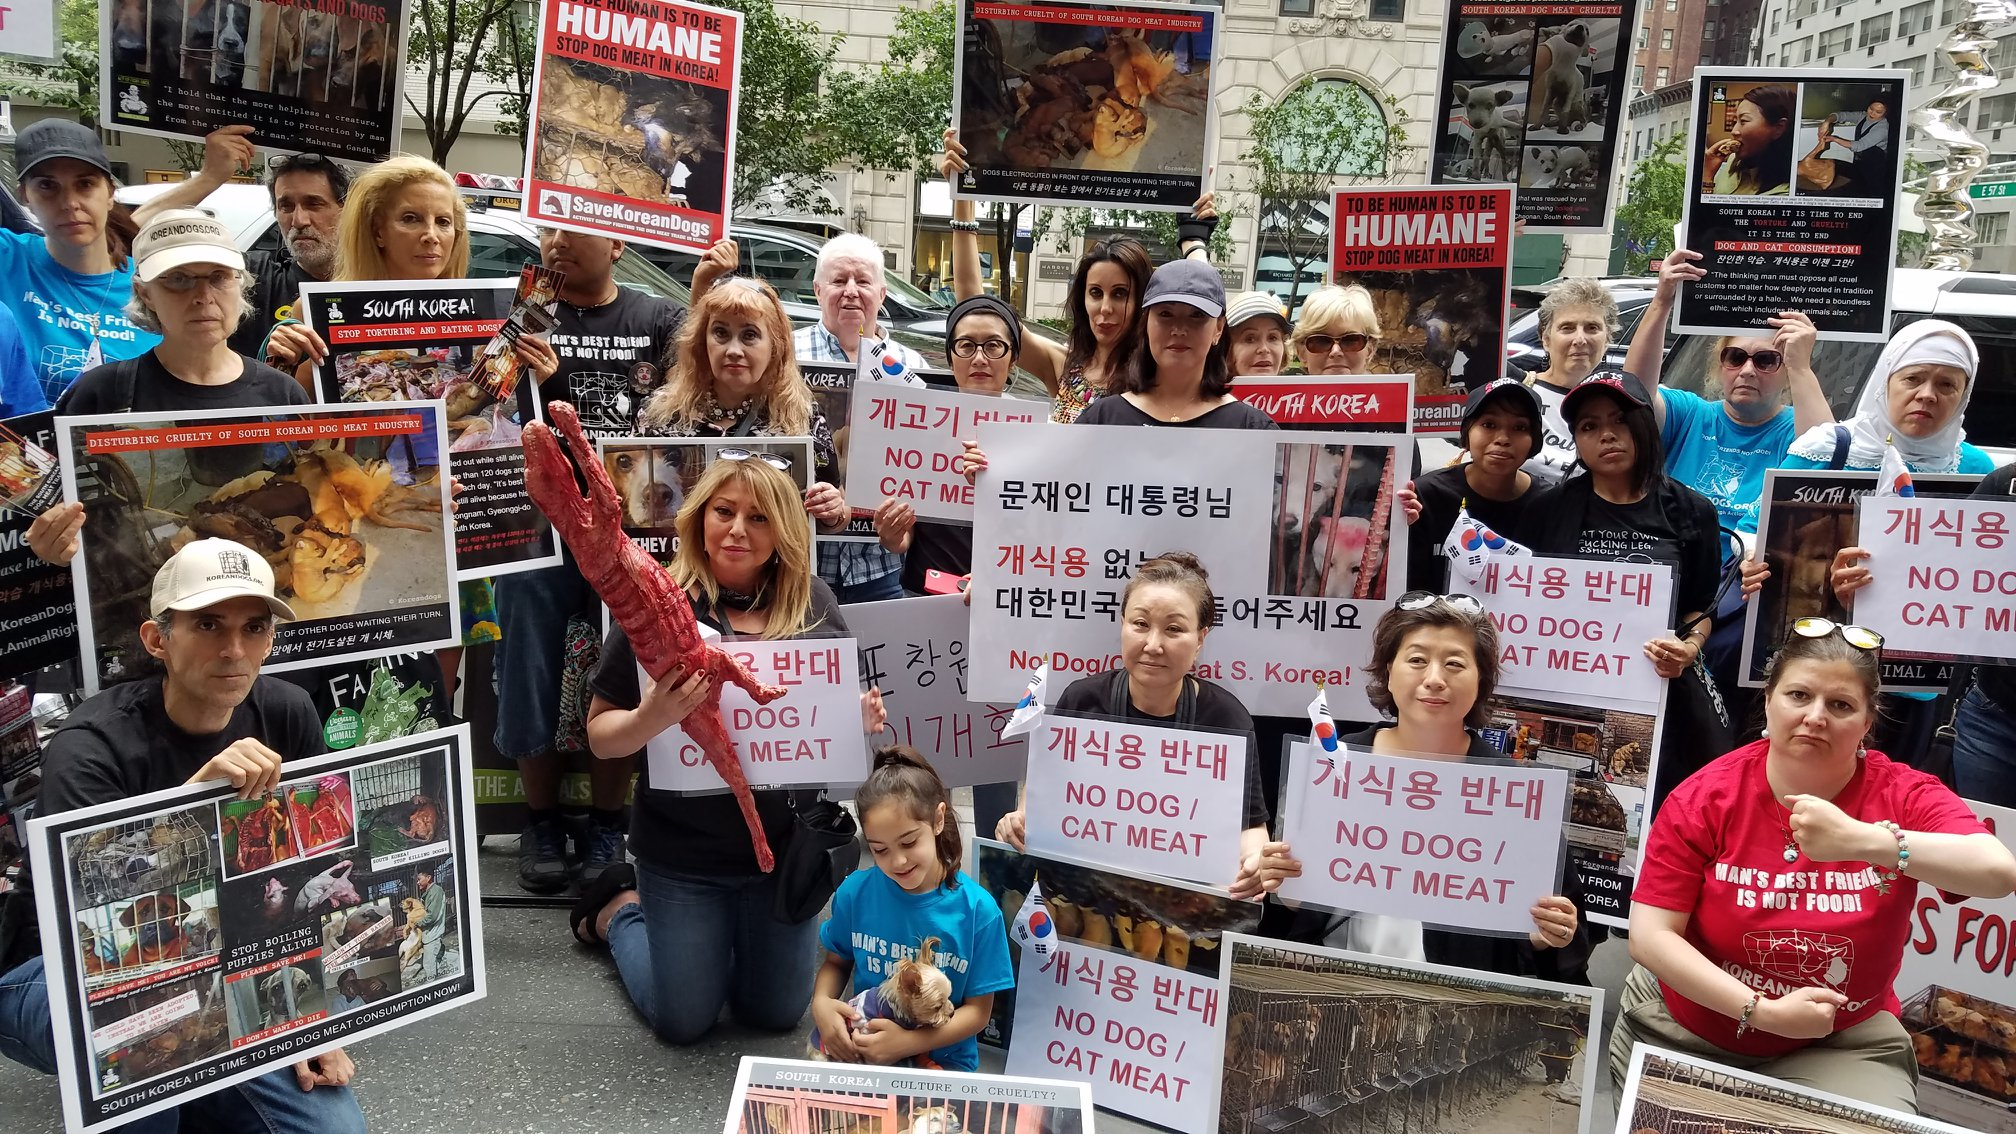 https://koreandogs.org/ny-demo-july-30-2018/?utm_source=sendinblue&utm_campaign=Help_keep_Nami_and_SaveKoreanDogsorg_save_dogs_from_hellish_South_Korean_dog_meat_industry&utm_medium=email